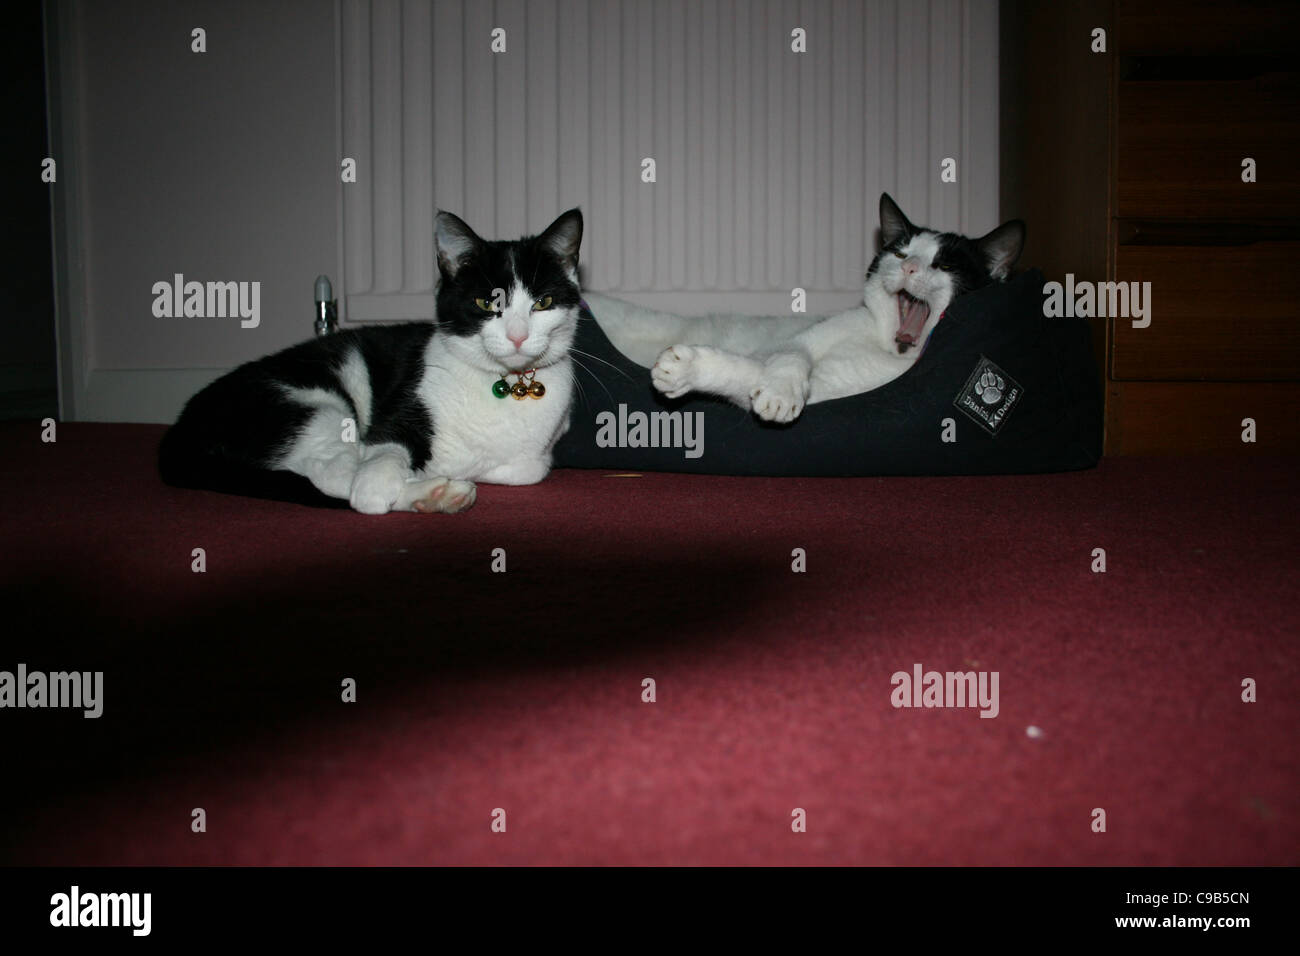 White cat with black markings on head  in basket yawning in front of radiator , black and white cat laying on red - Stock Image